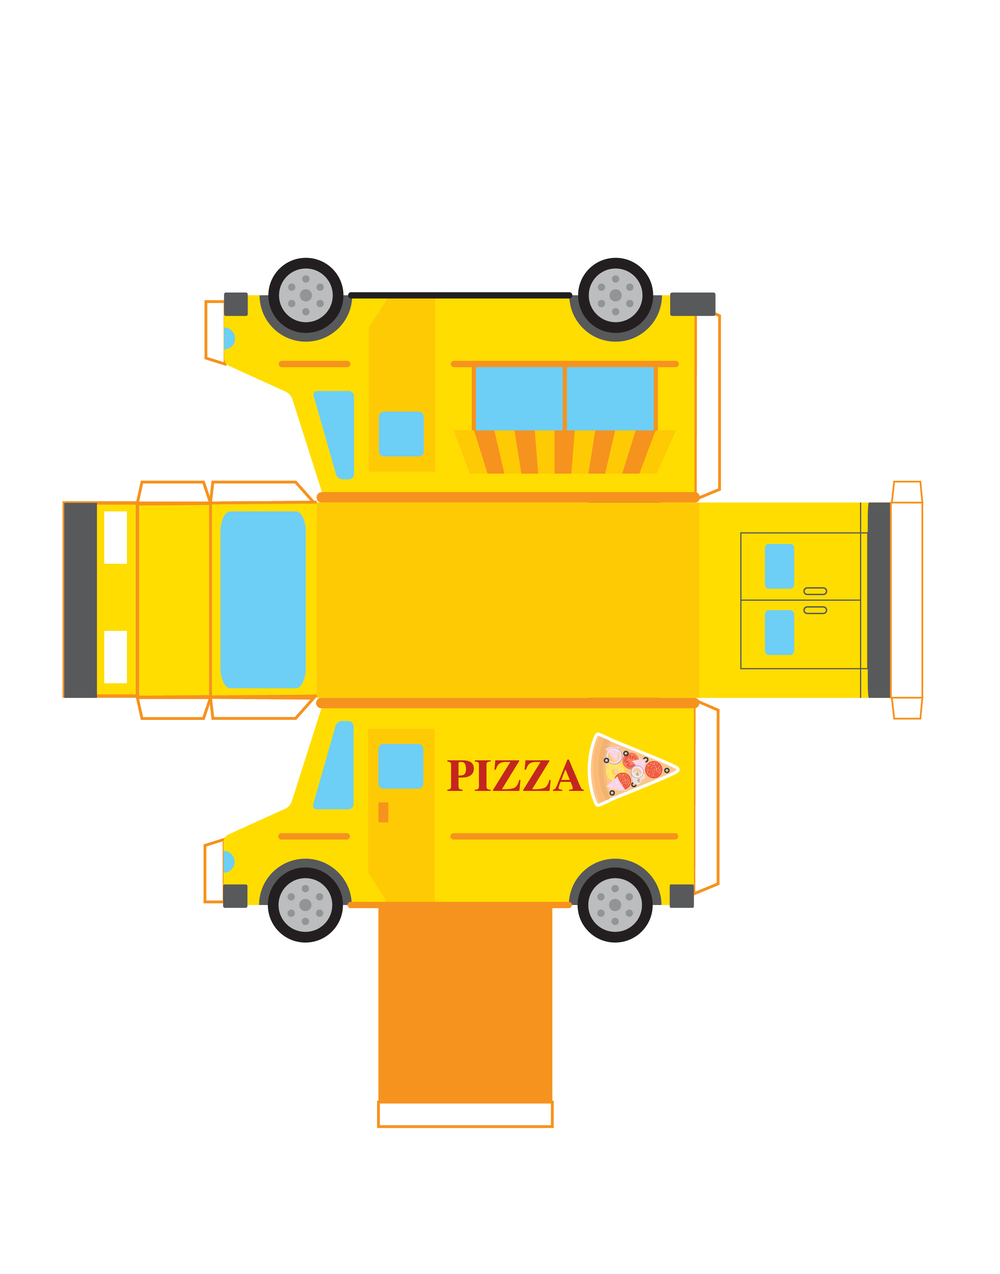 Food Truck Print Outs-04.jpg